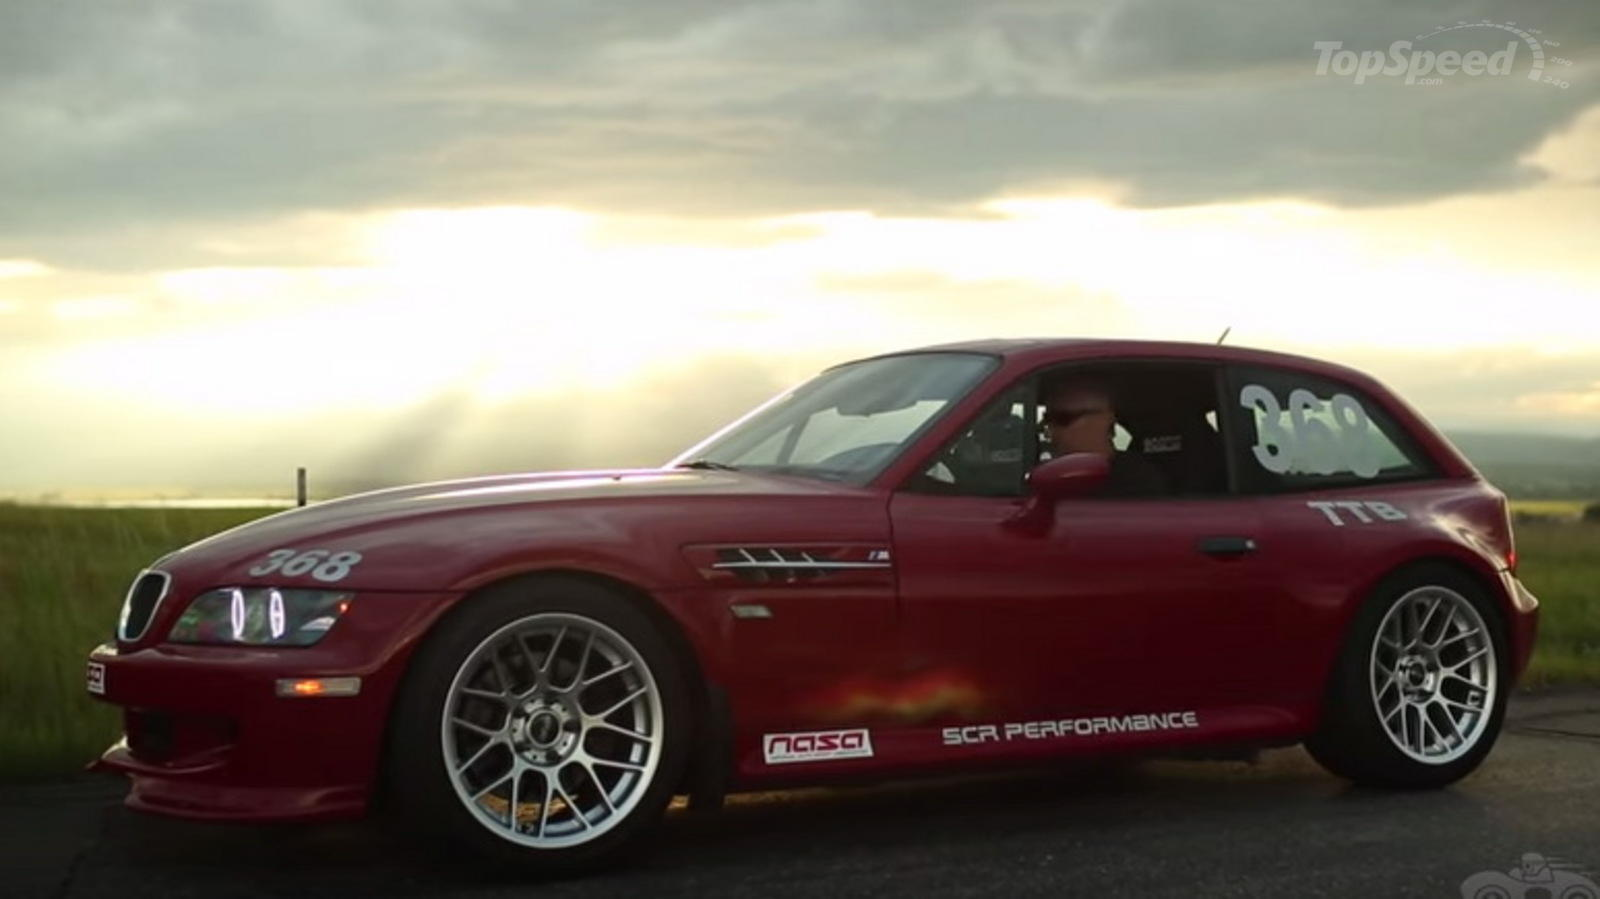 Jeffrey N Ross Top Speed Swag Chandelier Ebay Electronics Cars Fashion Collectibles Modified Bmw Z3m Coupe Stars In Petrolicious Video